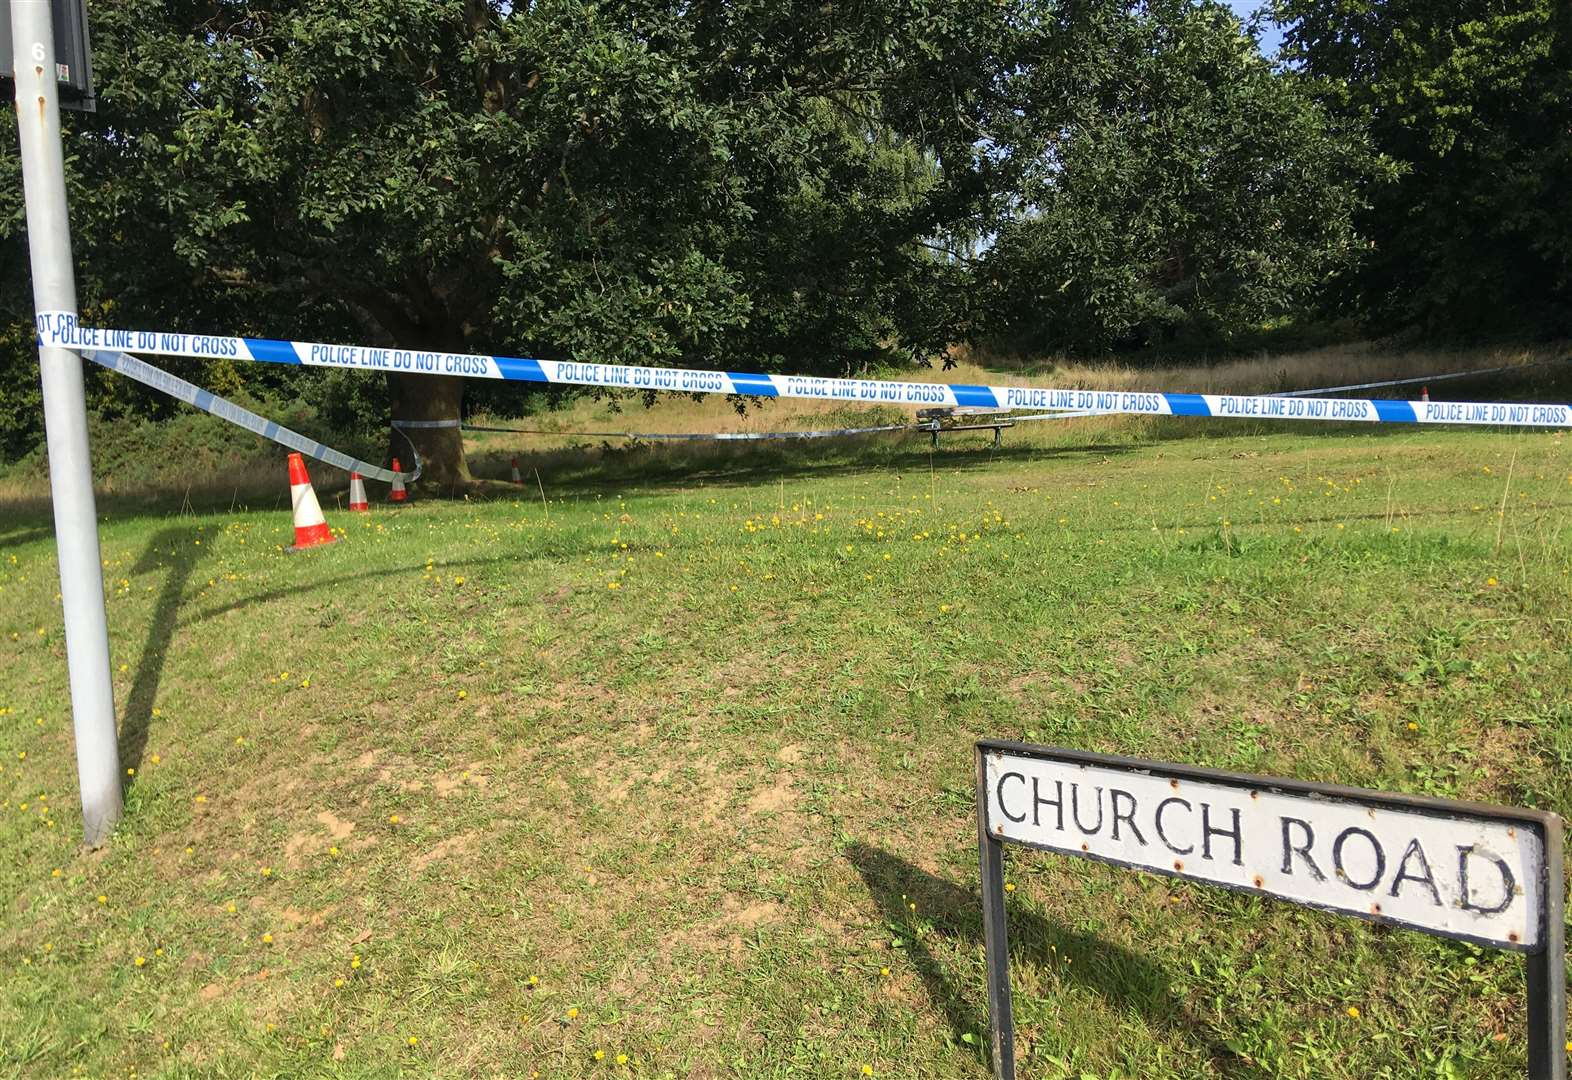 Police remain where body found